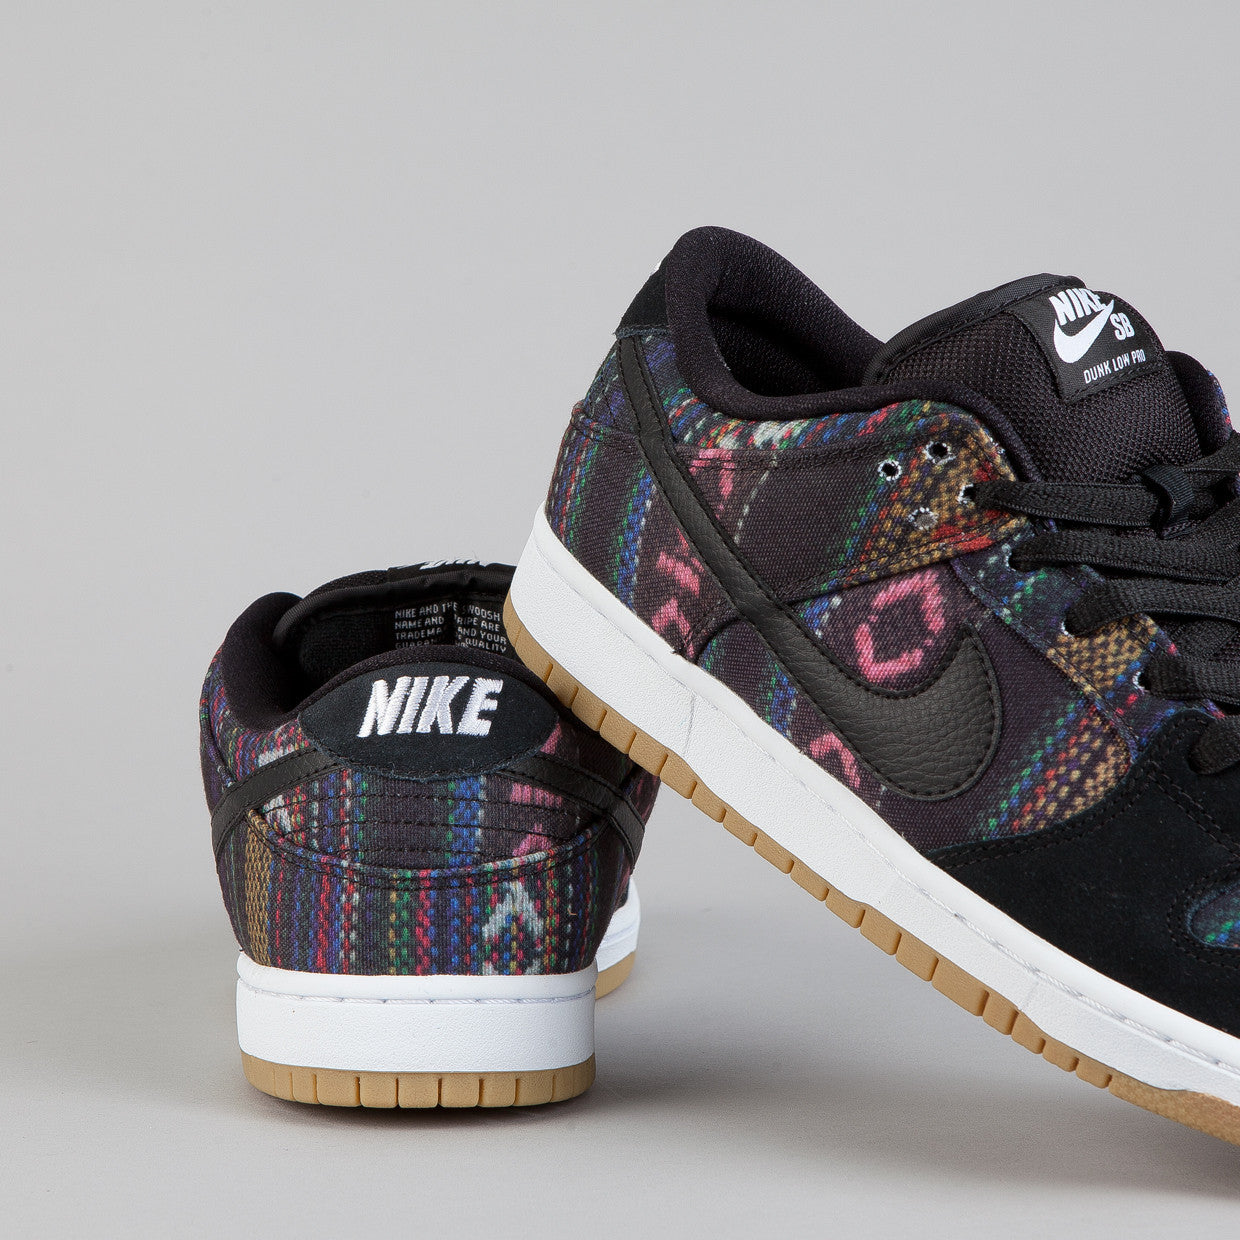 Nike Sb Dunk Low Pro (Hacky Sack) Multi-Colour / Black